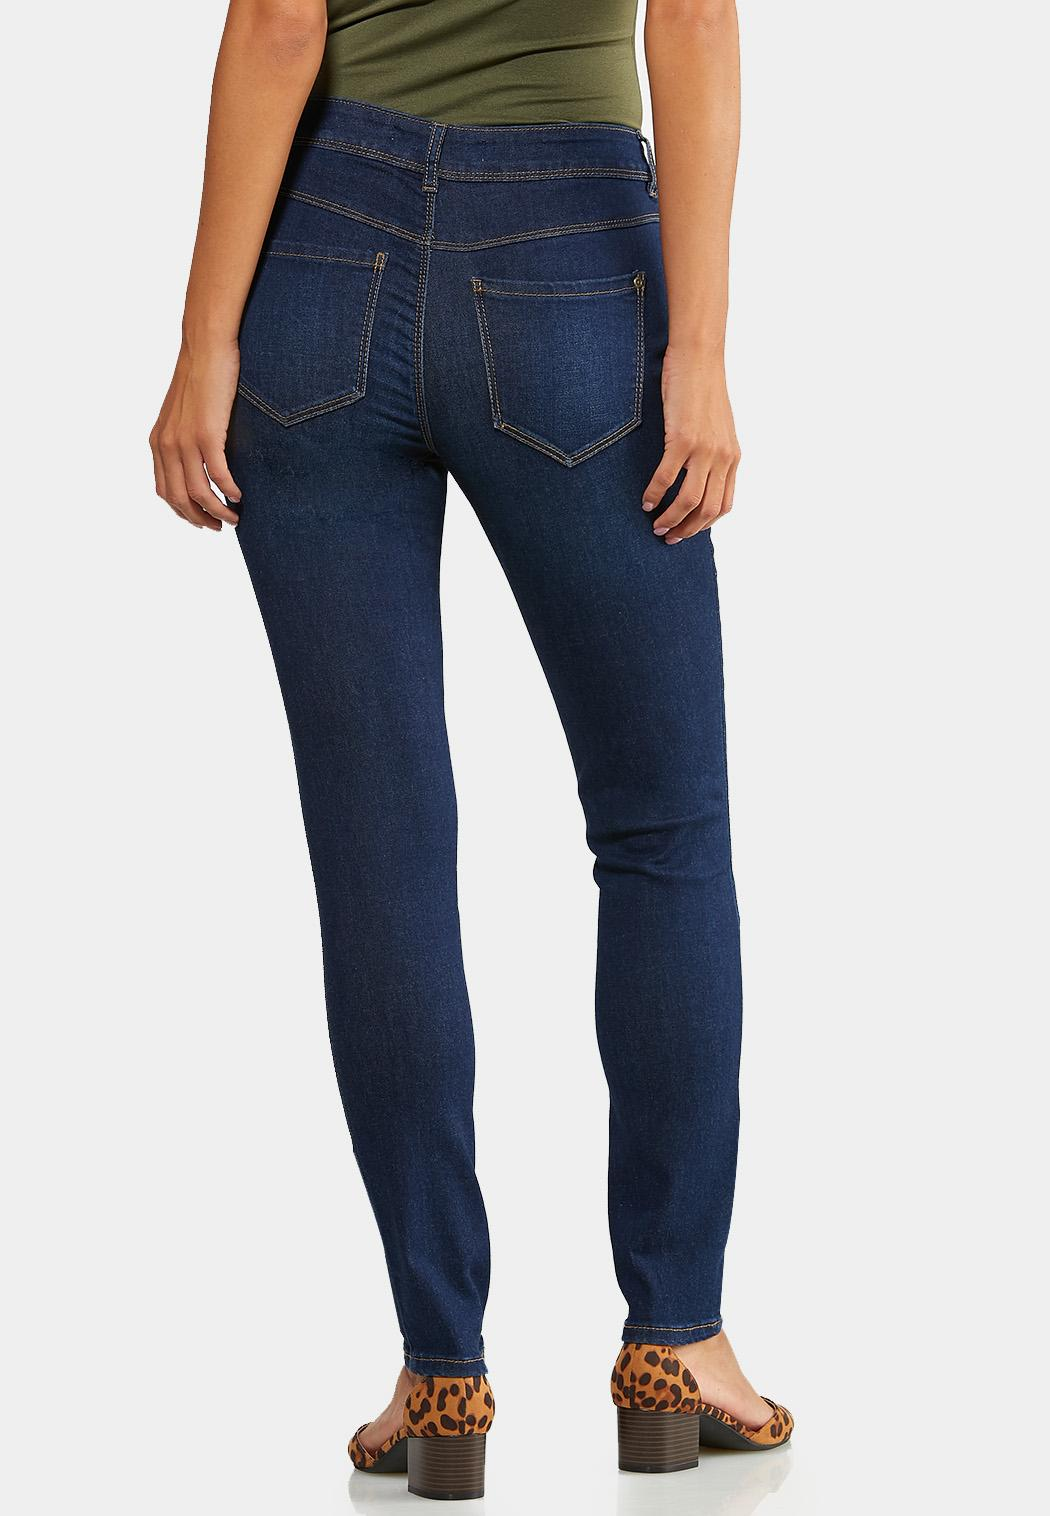 Essential Dark Wash Jeans (Item #43965986)